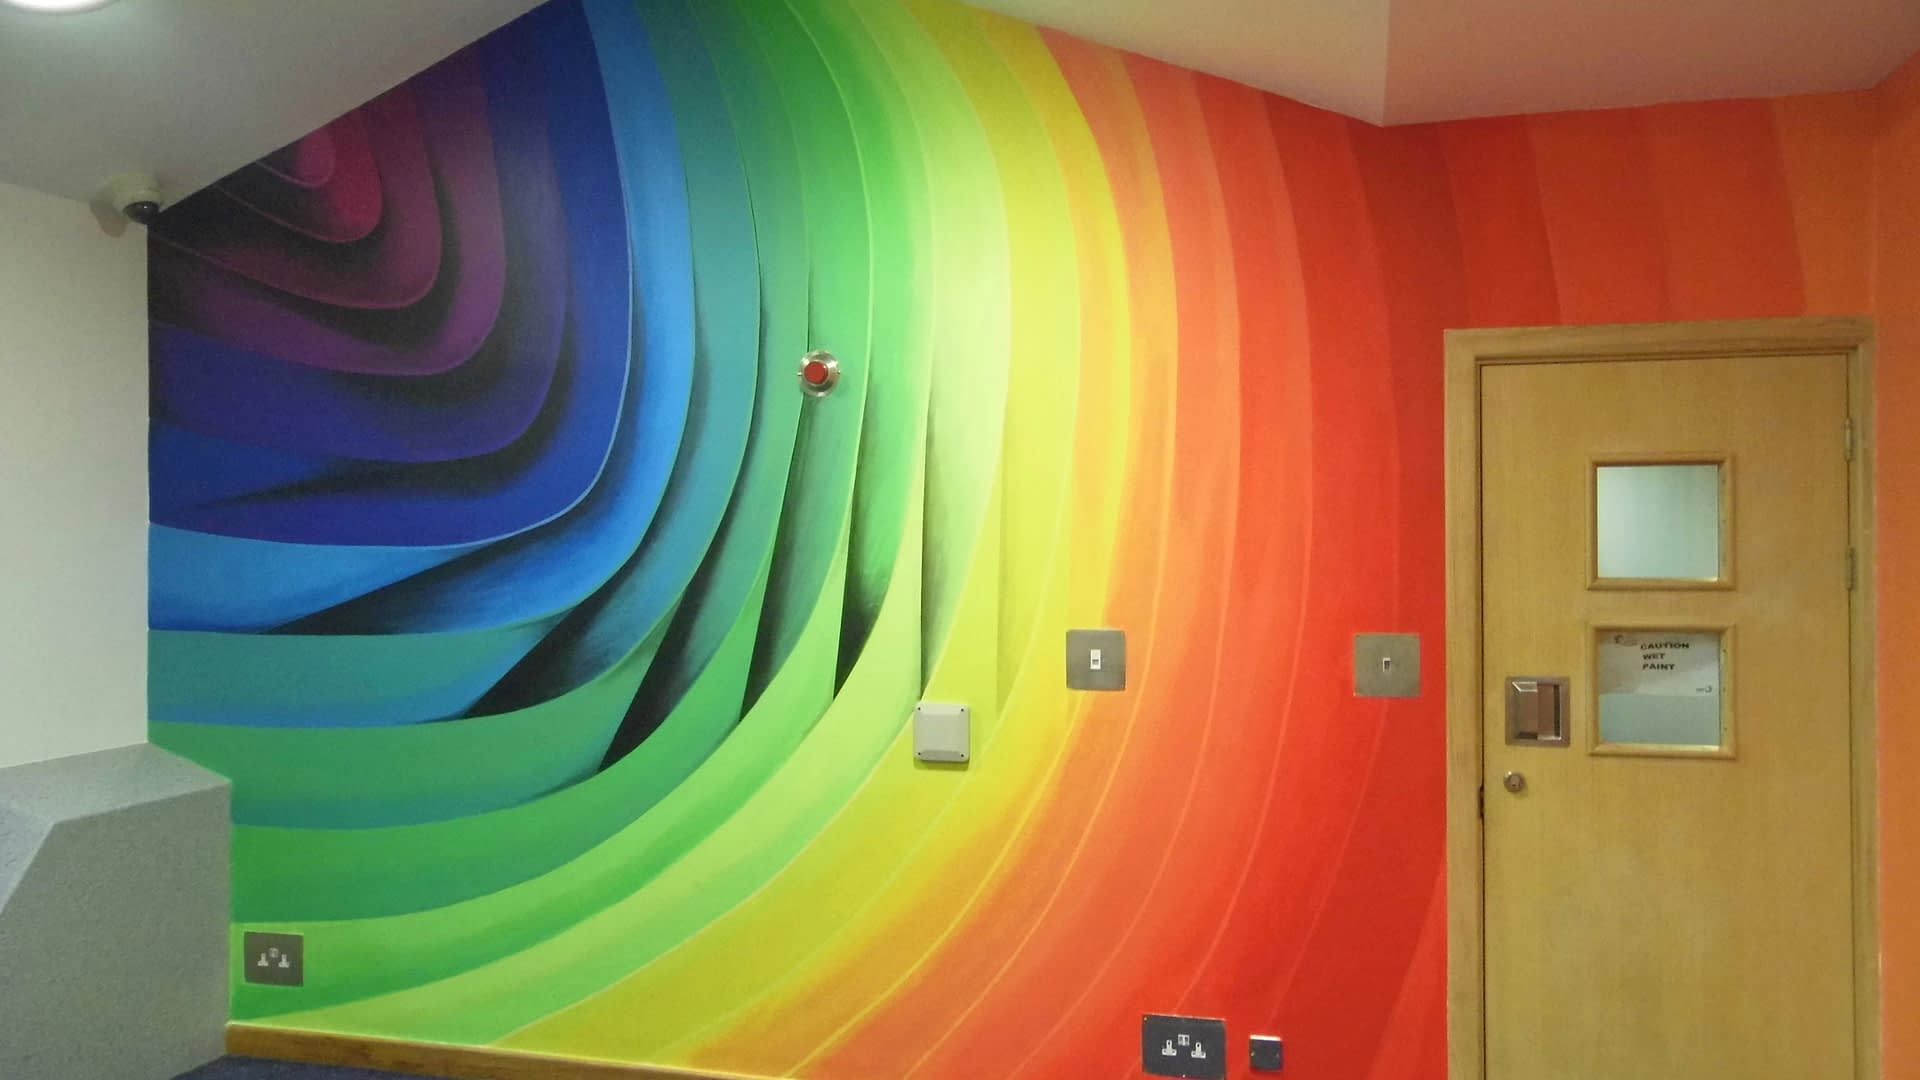 Abstract 3D Spectrum Mural